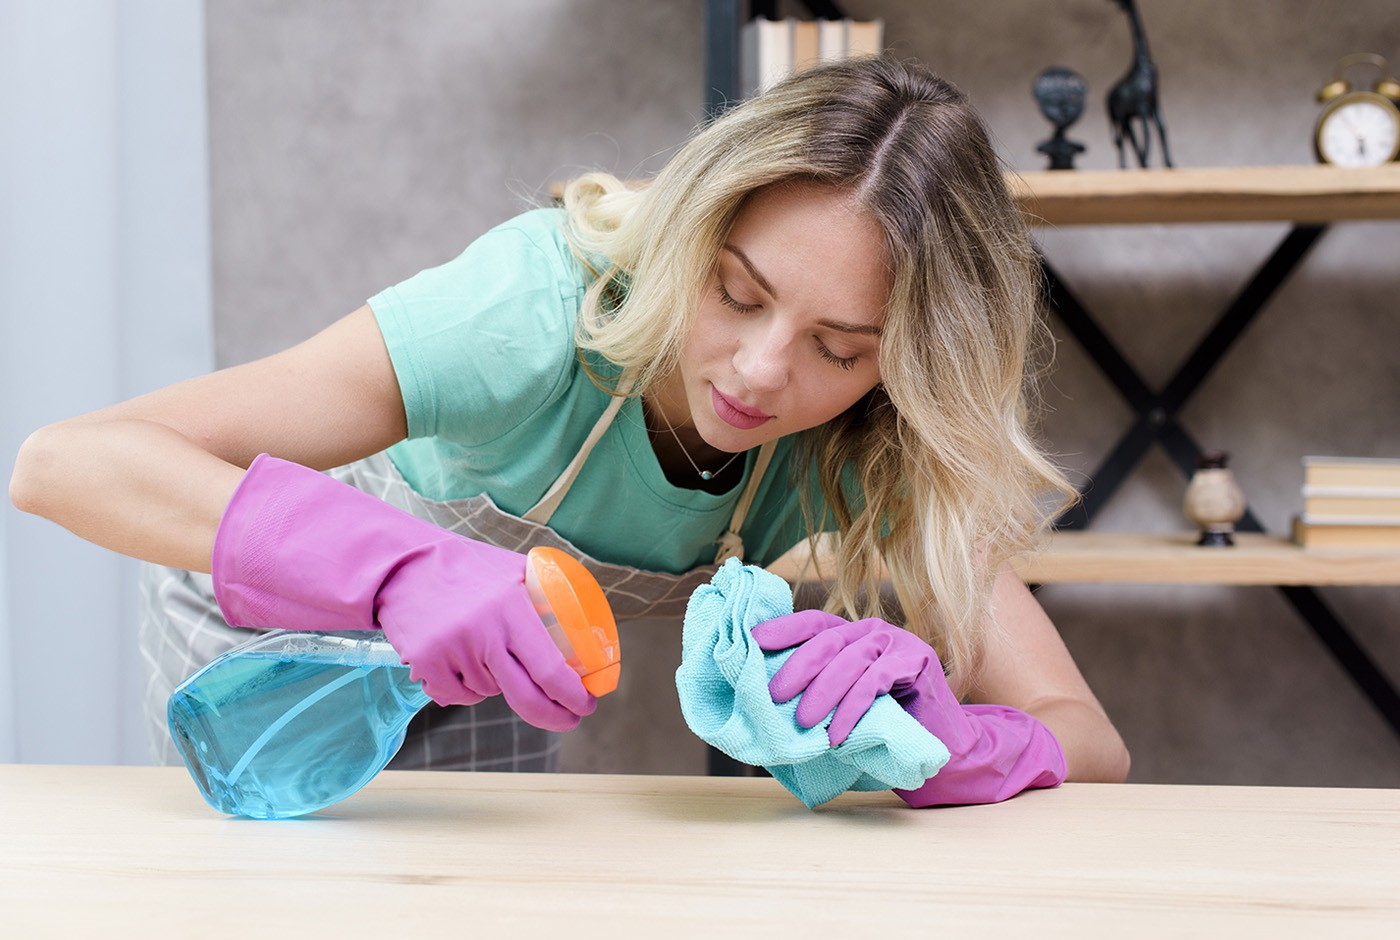 home service cleaning lady 2.jpg